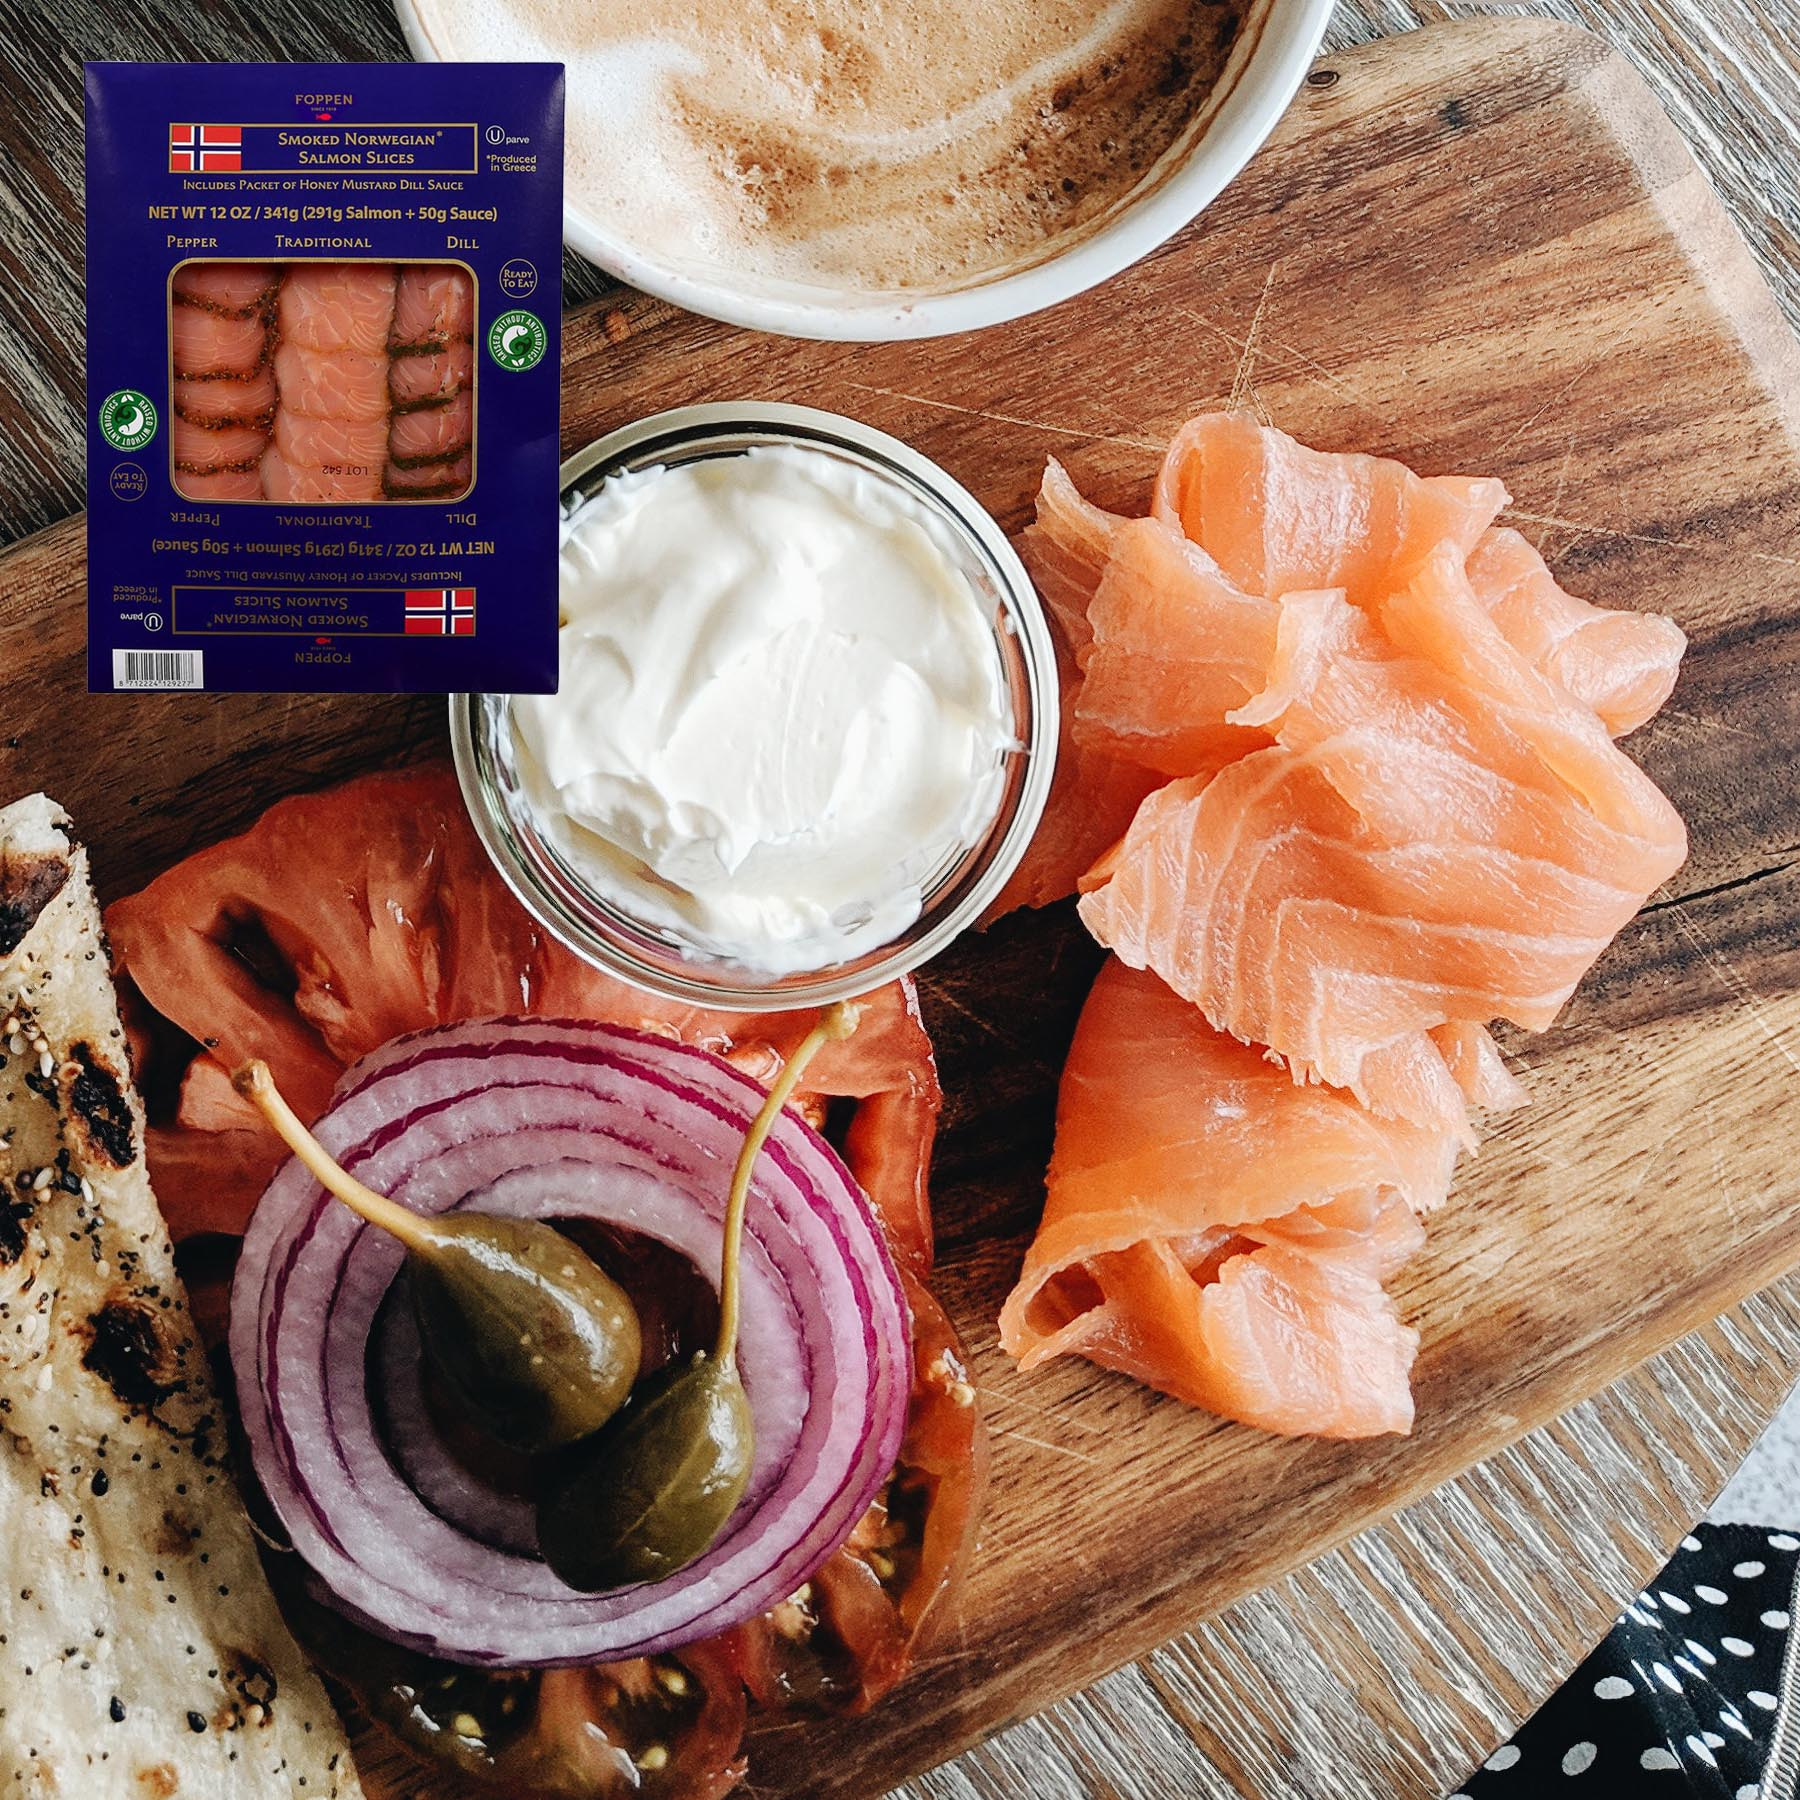 Foppen-Plated-Smoked-Salmon-Feature.jpg